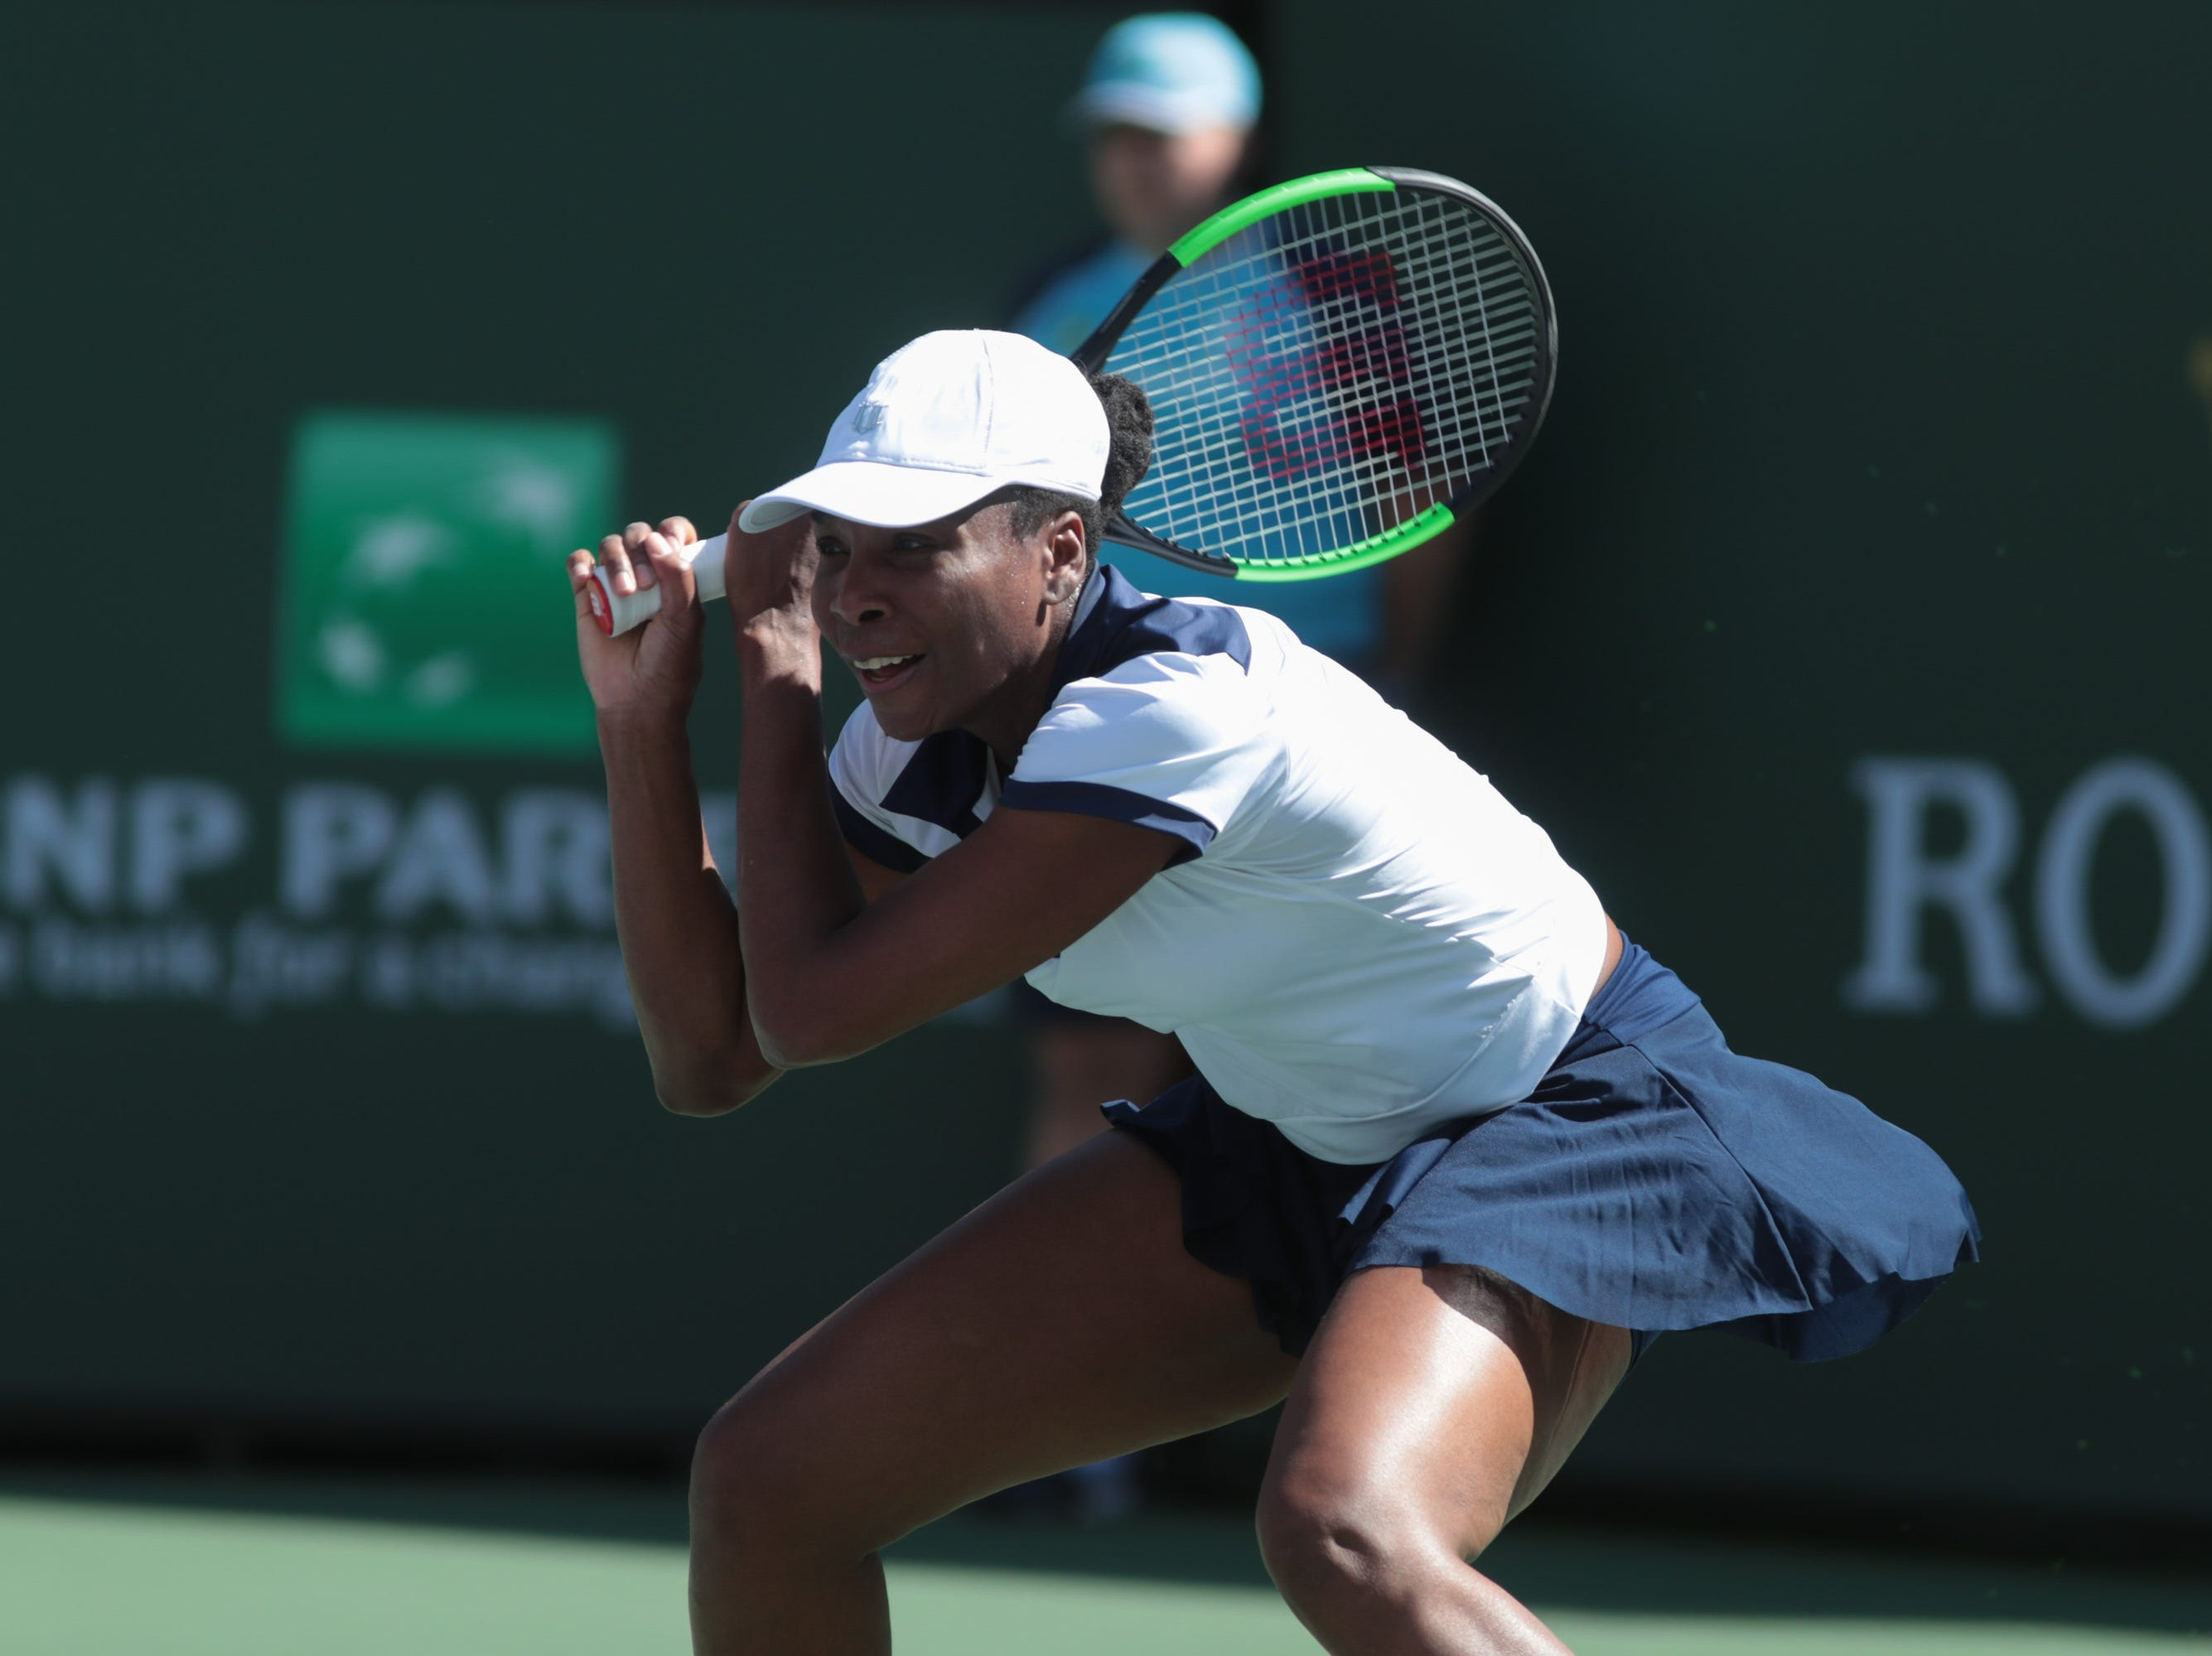 Venus Williams returns to Andrea Petkovic at the BNP Paribas Open, Indian Wells, Calif., Thursday, March 7, 2019.